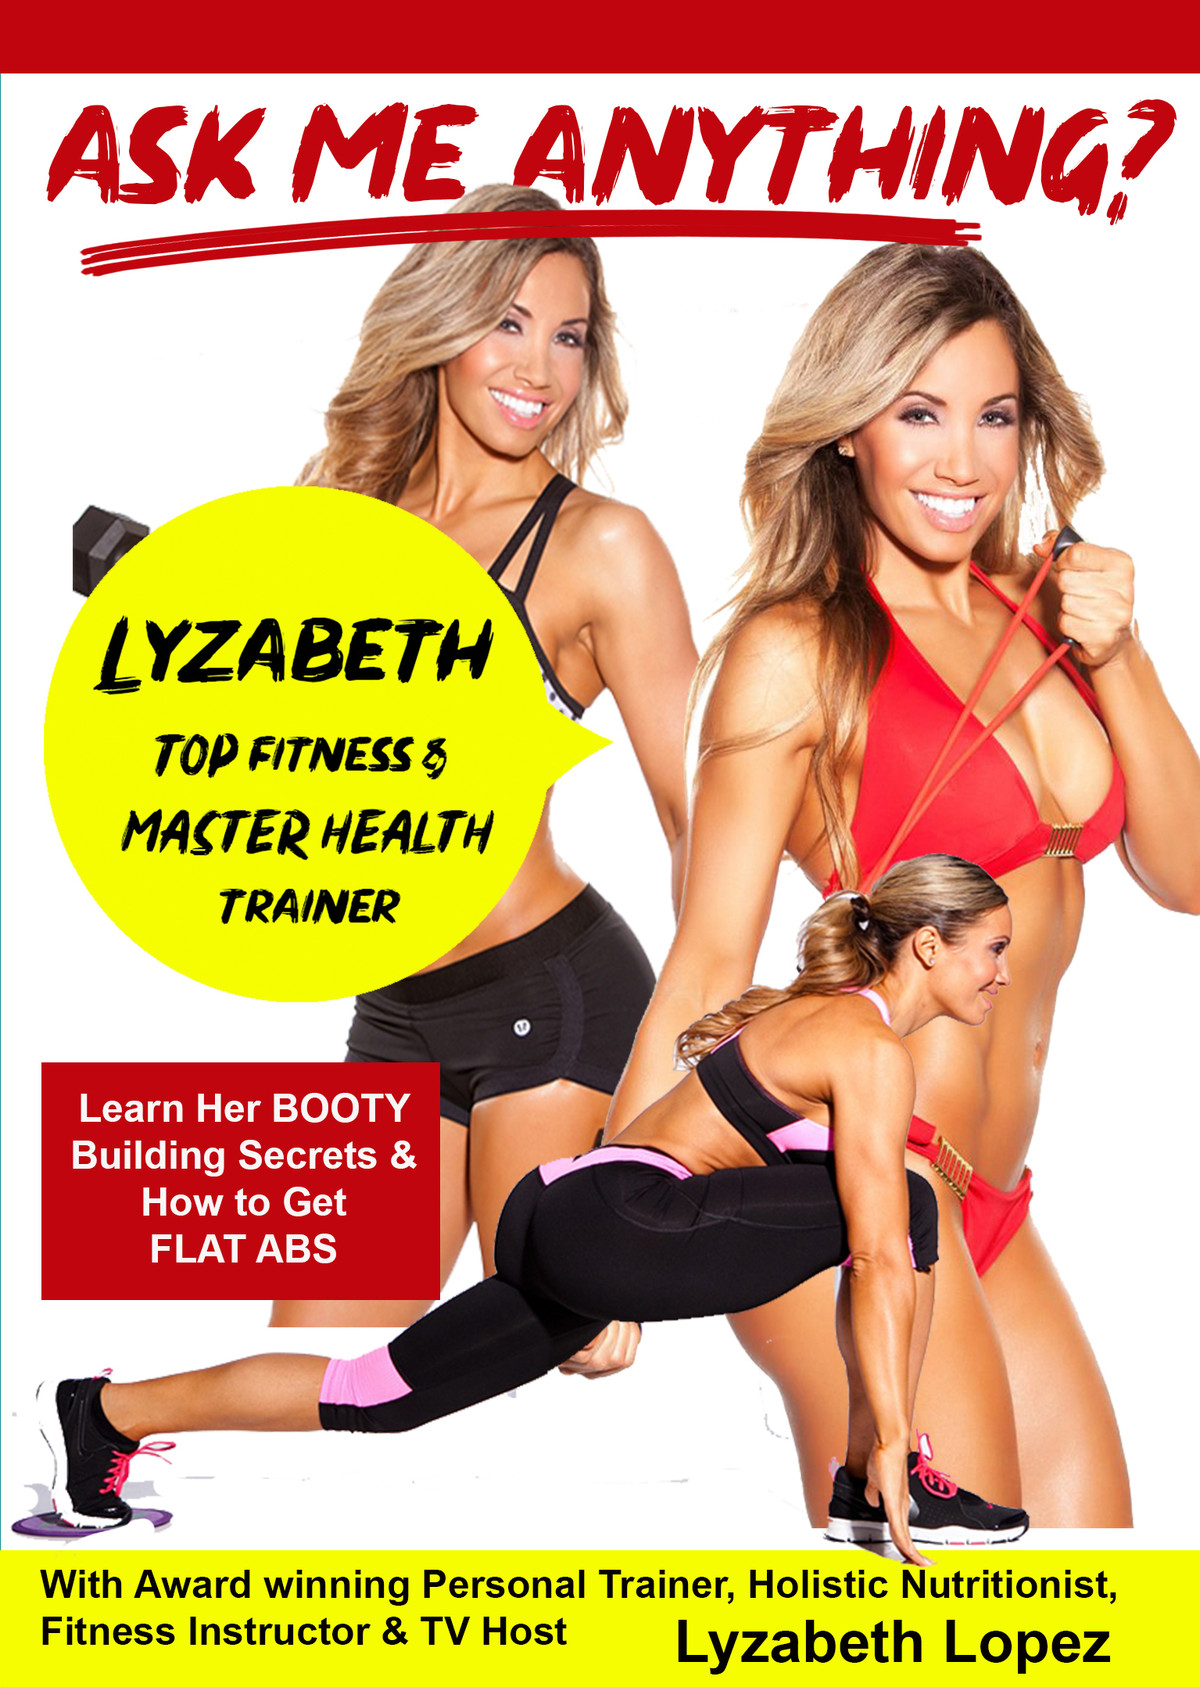 K4832 - Ask Me Anything With Award Winning Personal Trainer, Holistic Nutritionist, Fitness Instructor & TV Host Lyzabeth Lopez & Learn The Latest Fitness Routine's To Get That Hourglass Figure You've Always Been Looking For